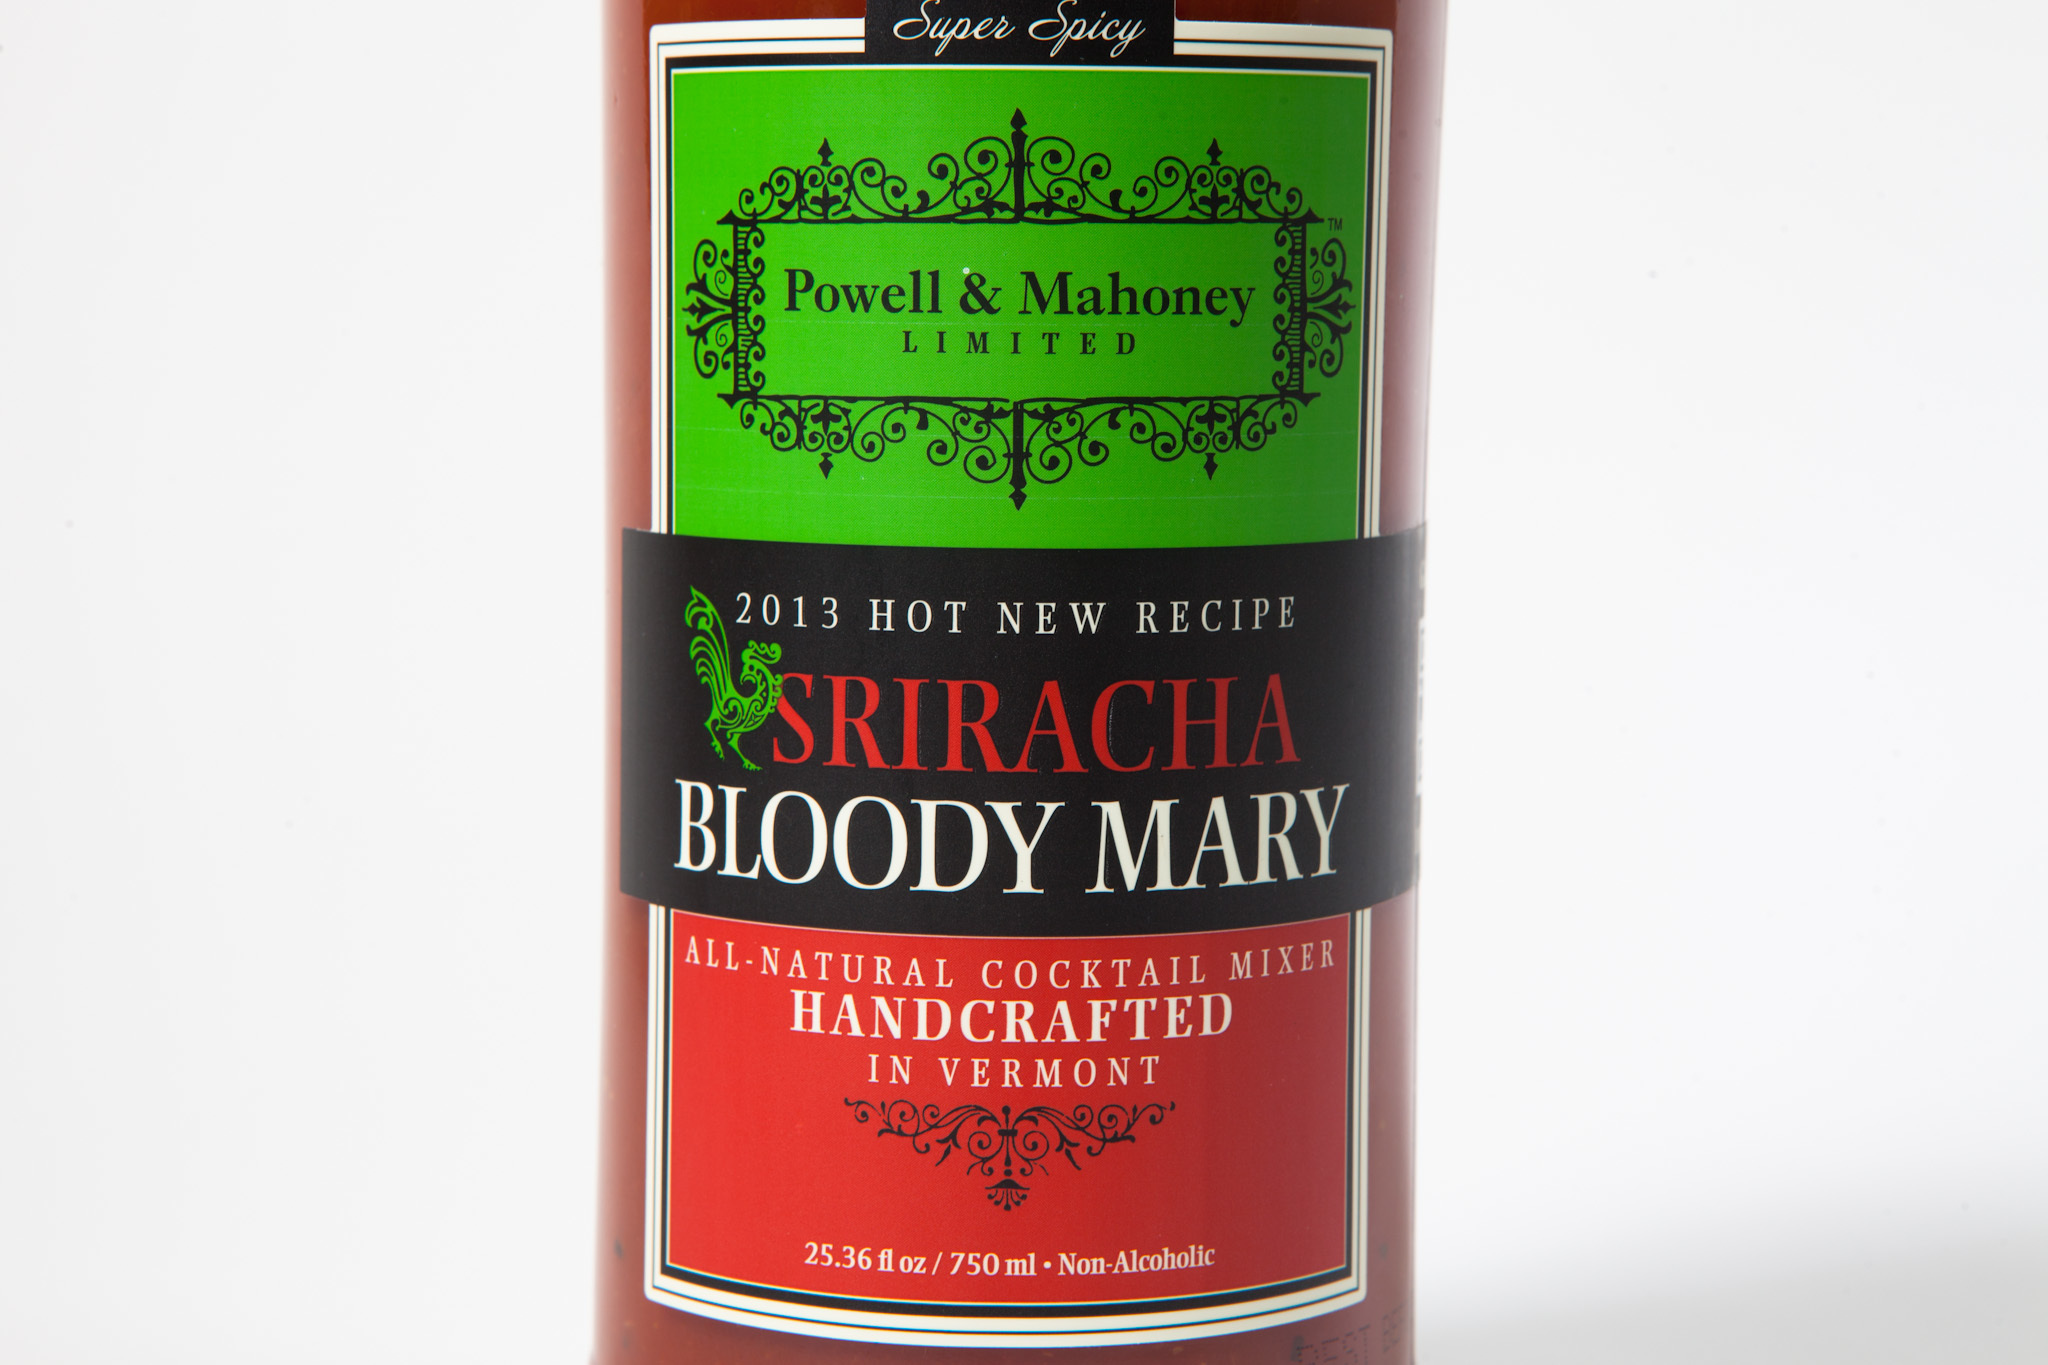 Powell & Mahoney Siracha bloody mary